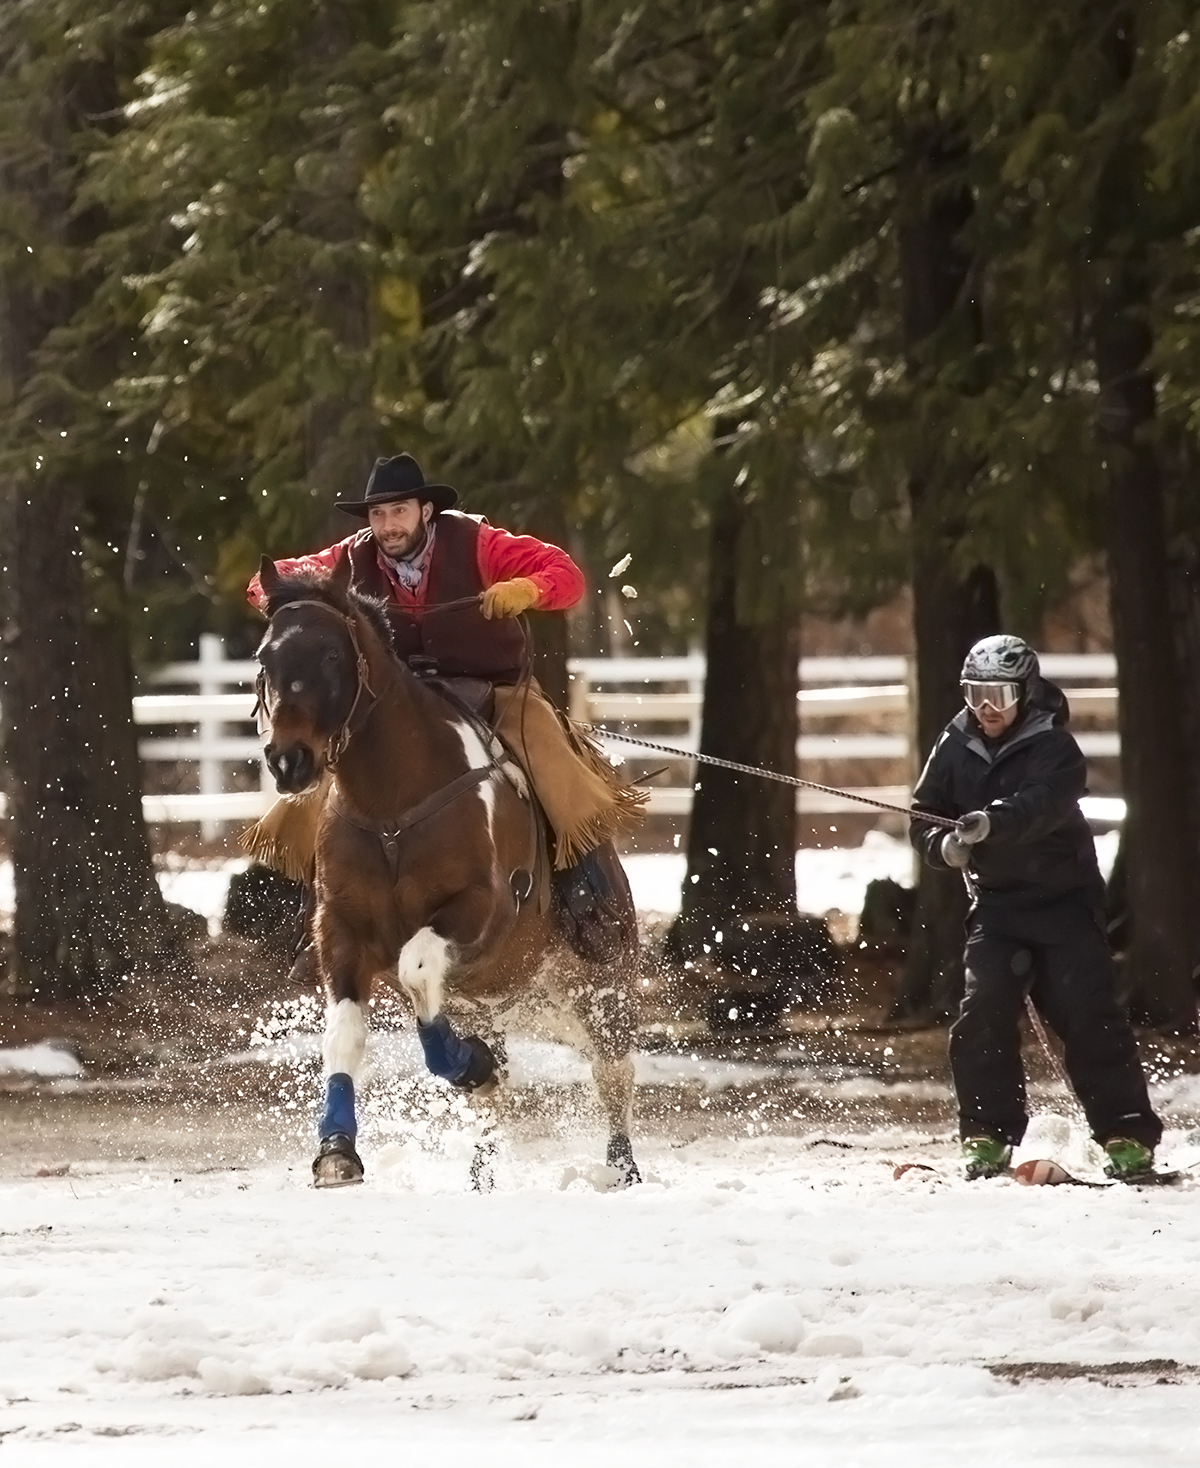 And They're Off ! Skijoring in Sandpoint, ID Winter Carnival 2014 via J5MM.com